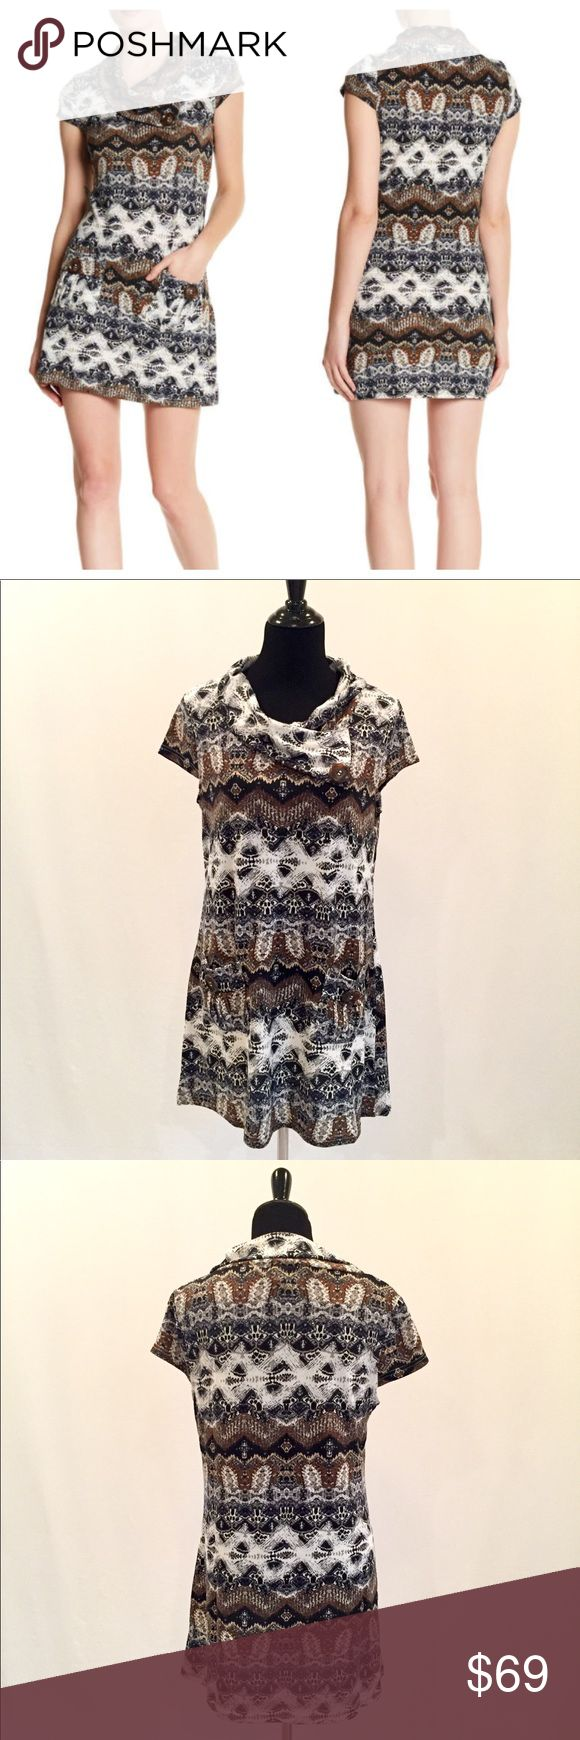 Papillon Foldover Collar Jersey Mini Dress - Tunic New With Tags- mixed print stretch mini dress or tunic with foldover collar, cap sleeves and 2 patch pockets with button accents. 95% Polyester, 5% Elastane. Papillon Dresses Mini